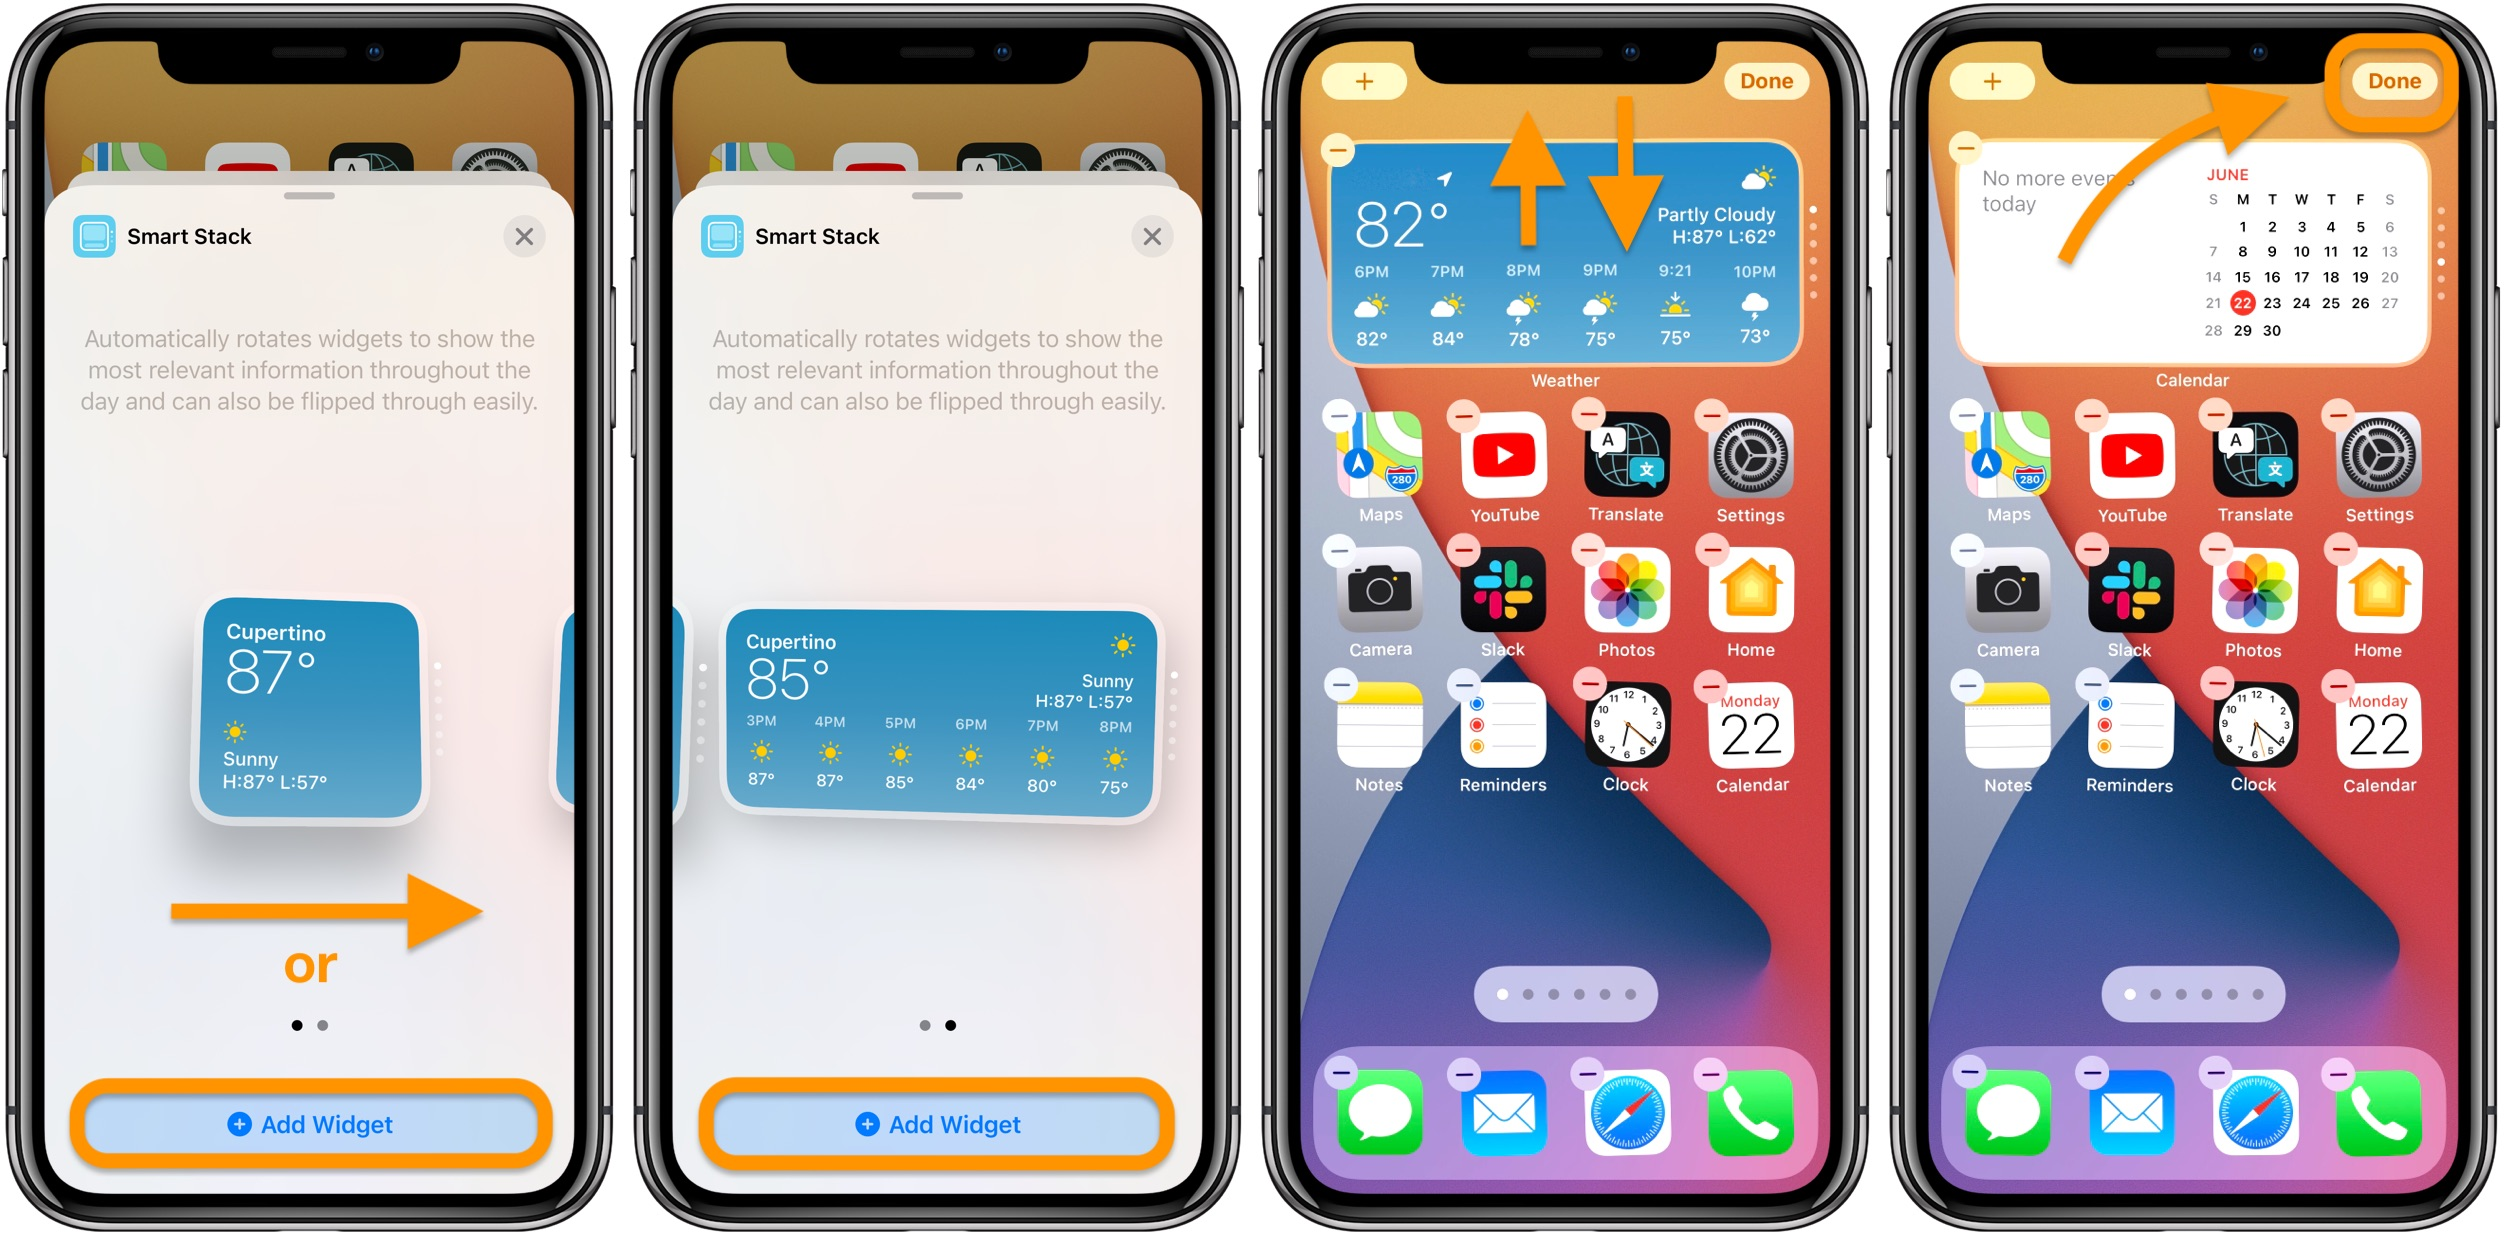 How to use iPhone home screen widgets iOS 14 walkthrough 2